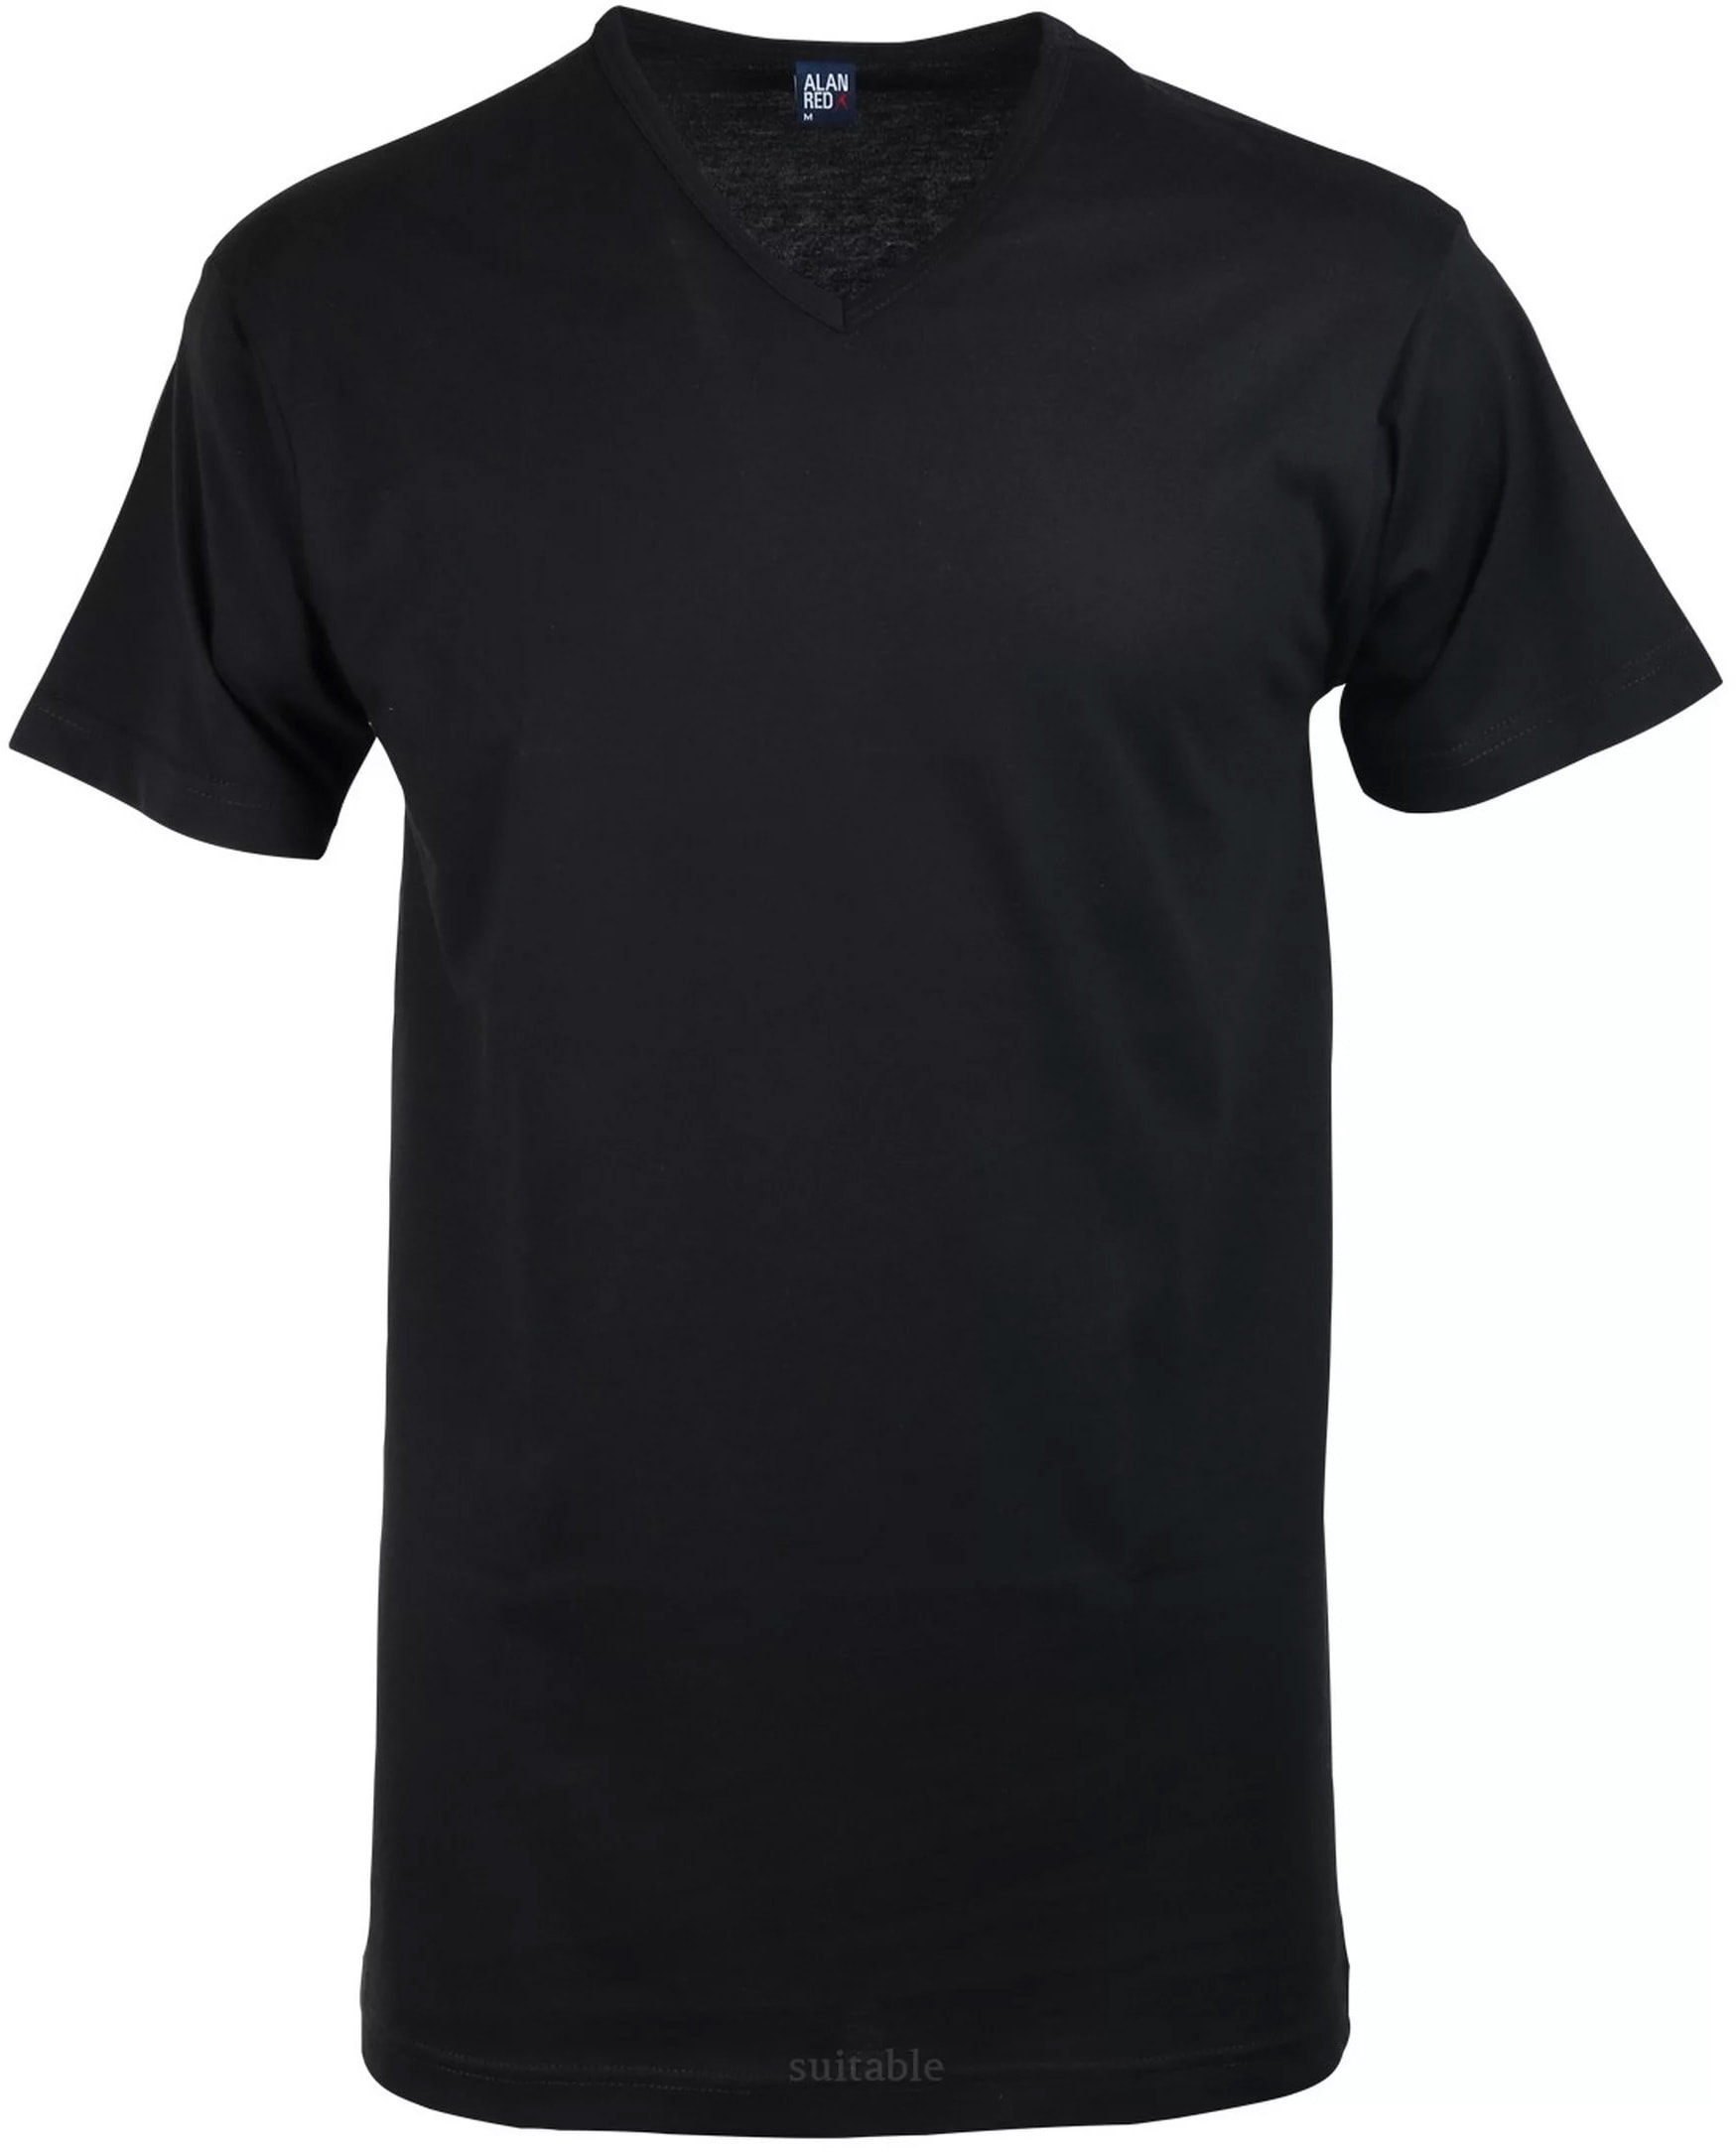 Alan Red Vermont T-shirt V-Neck Black 1-Pack foto 0